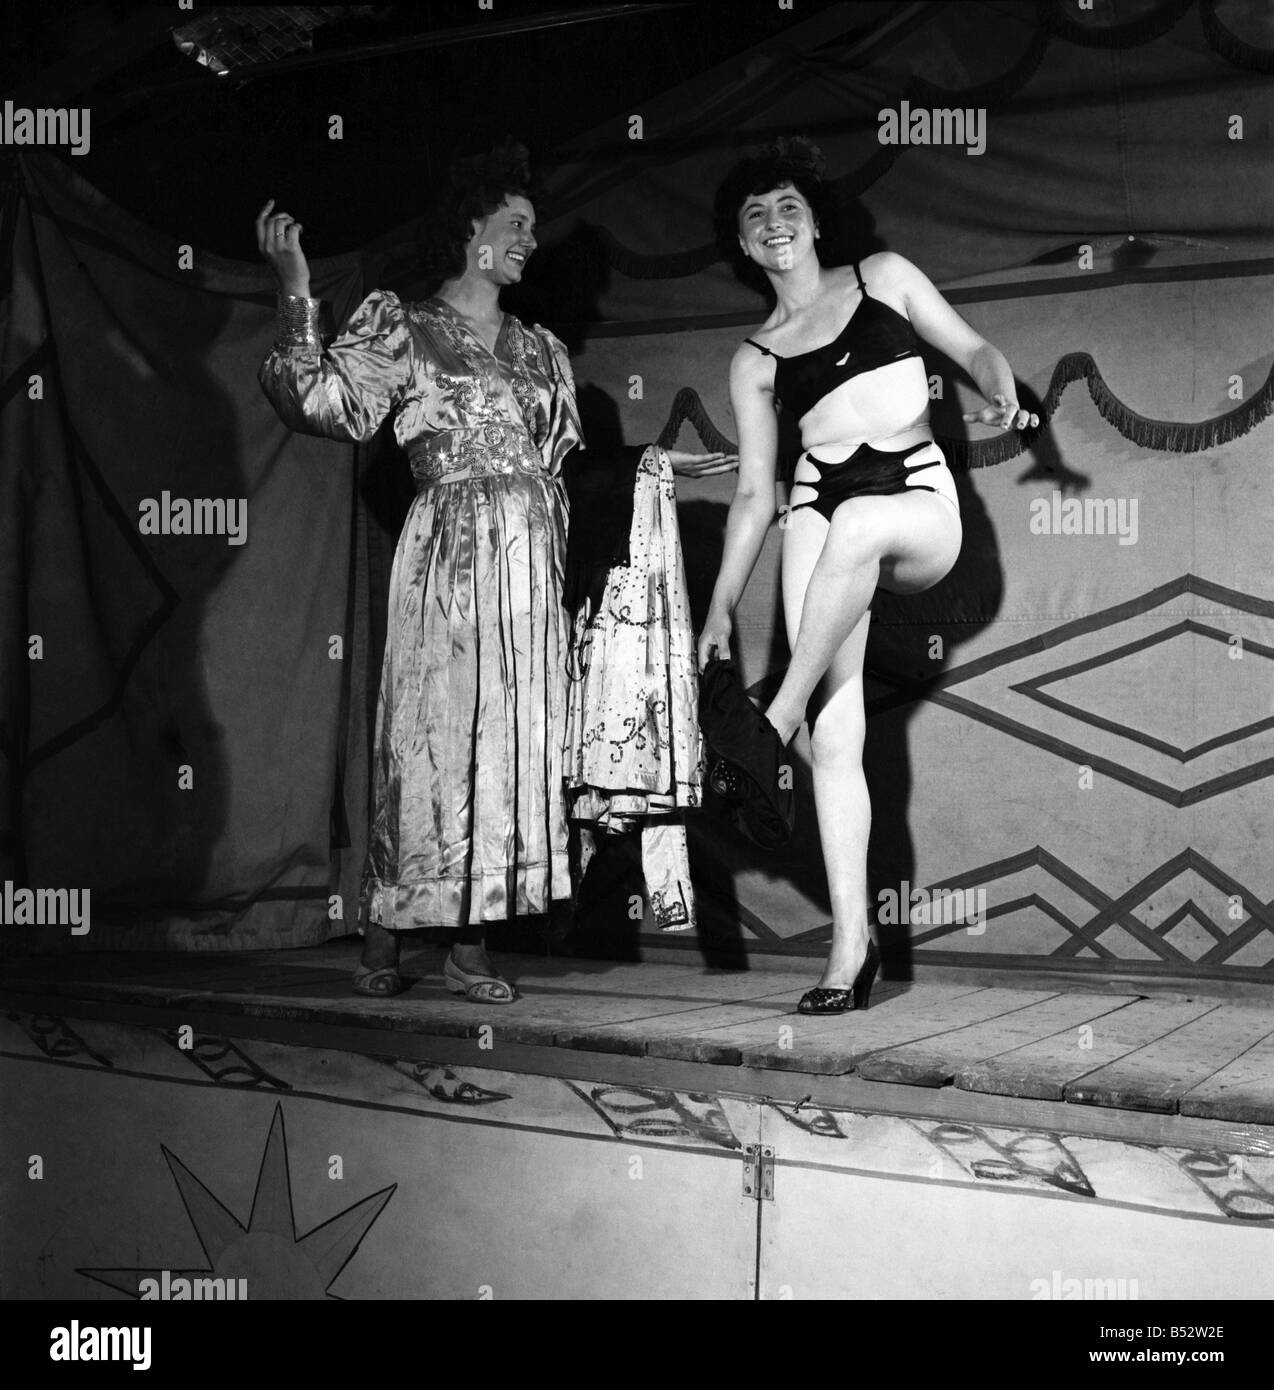 87ecdd7abc7 Joan Frost and Elsie Price seen here on stage performing 'Striptease' a  travelling show